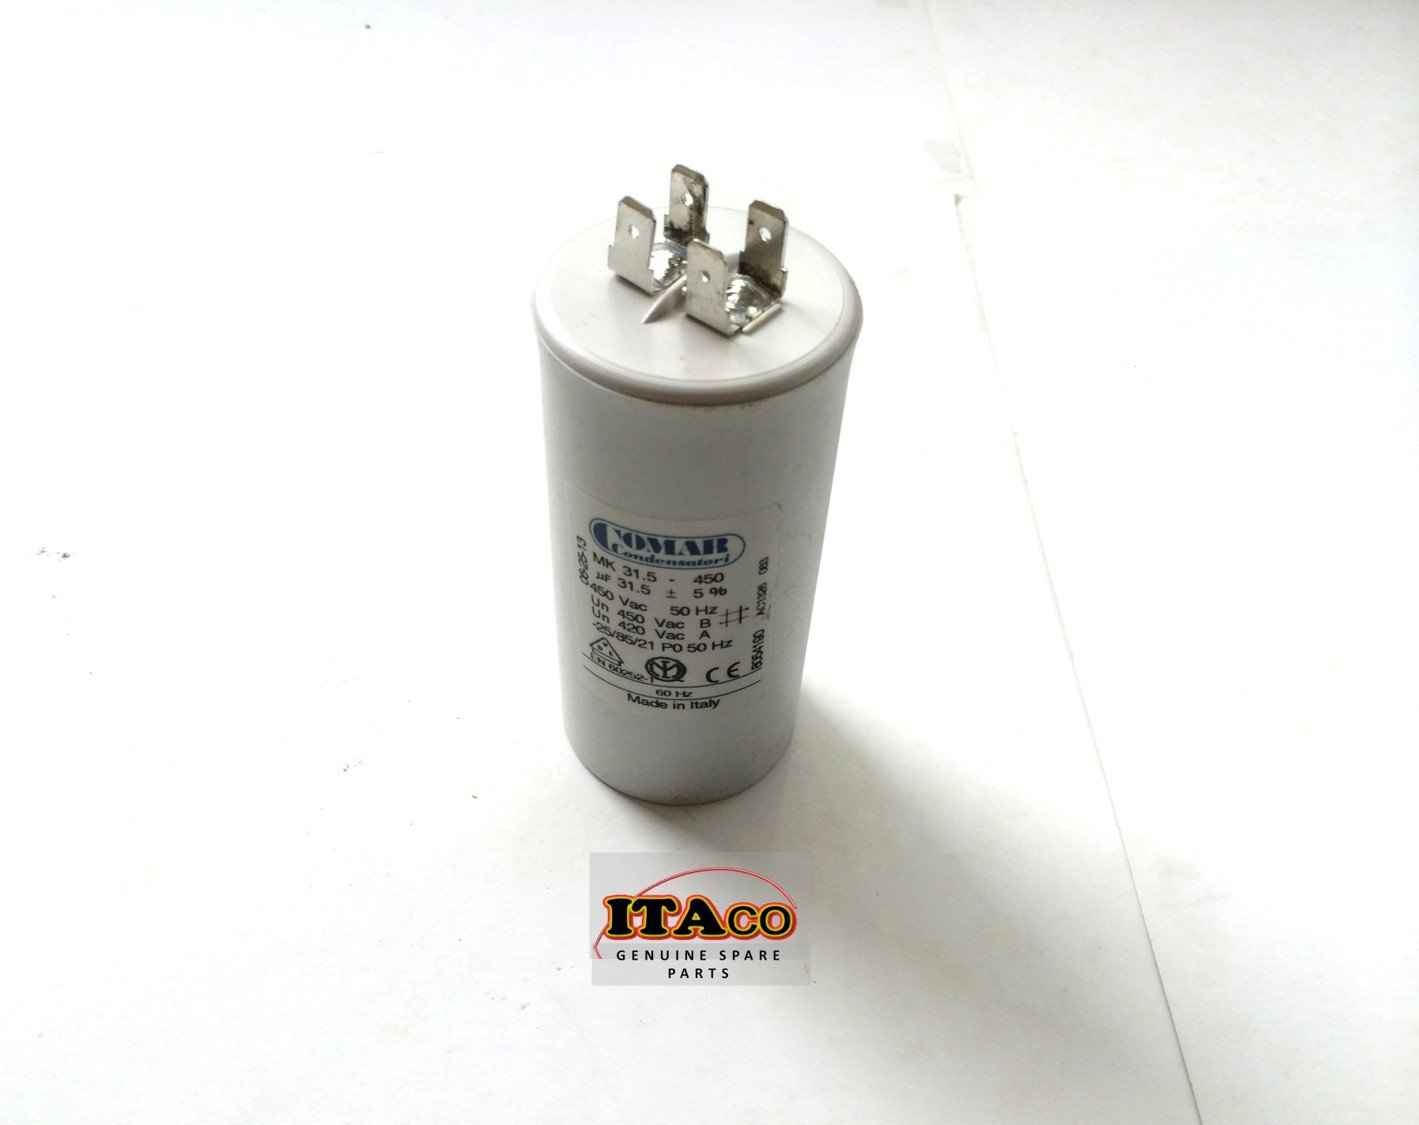 Made in ITALY Motor Electrolytic Comar CONDENSER CAPACITOR MK31.5uF 30UF ~ 31.5UF ~ 33UF 31uF 32uF 450V Vac by ITACO